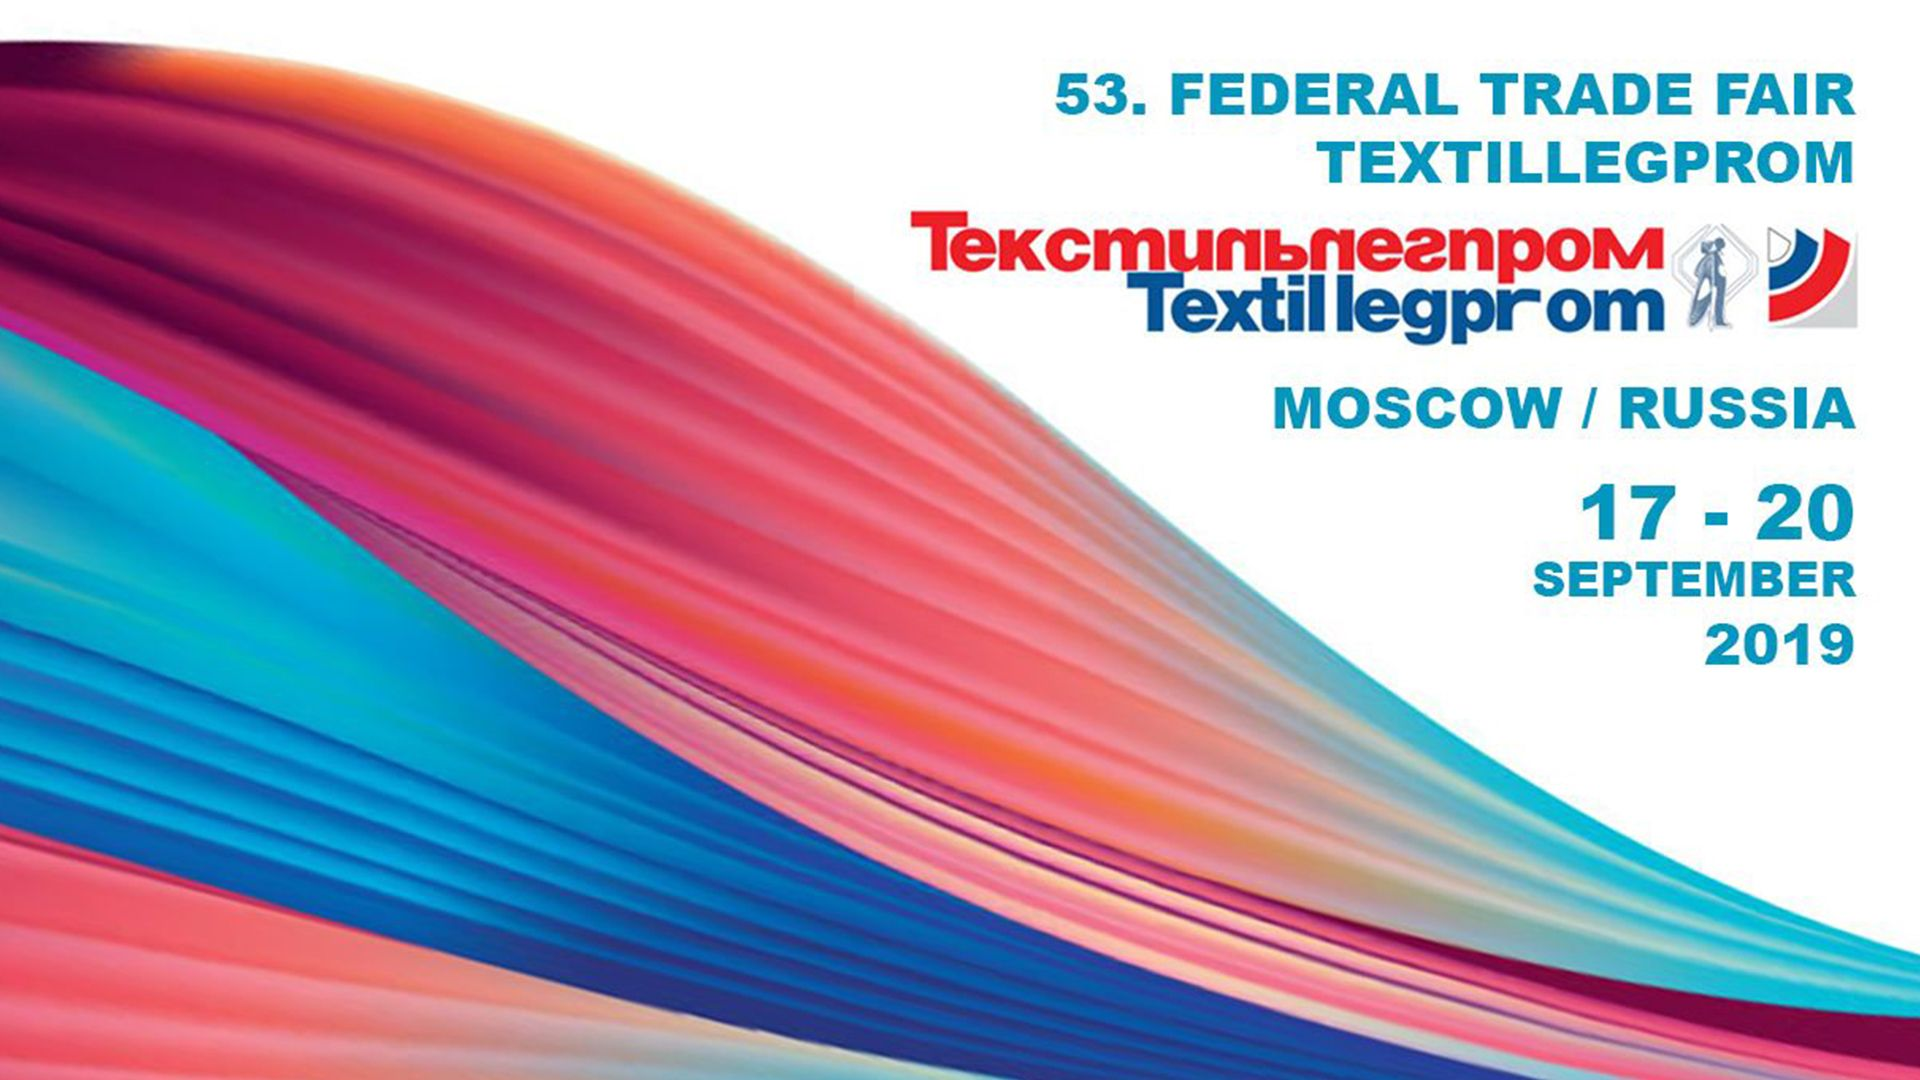 53. Federal Trade Fair Textillegprom Moscow / Russia 17-20 September 2019